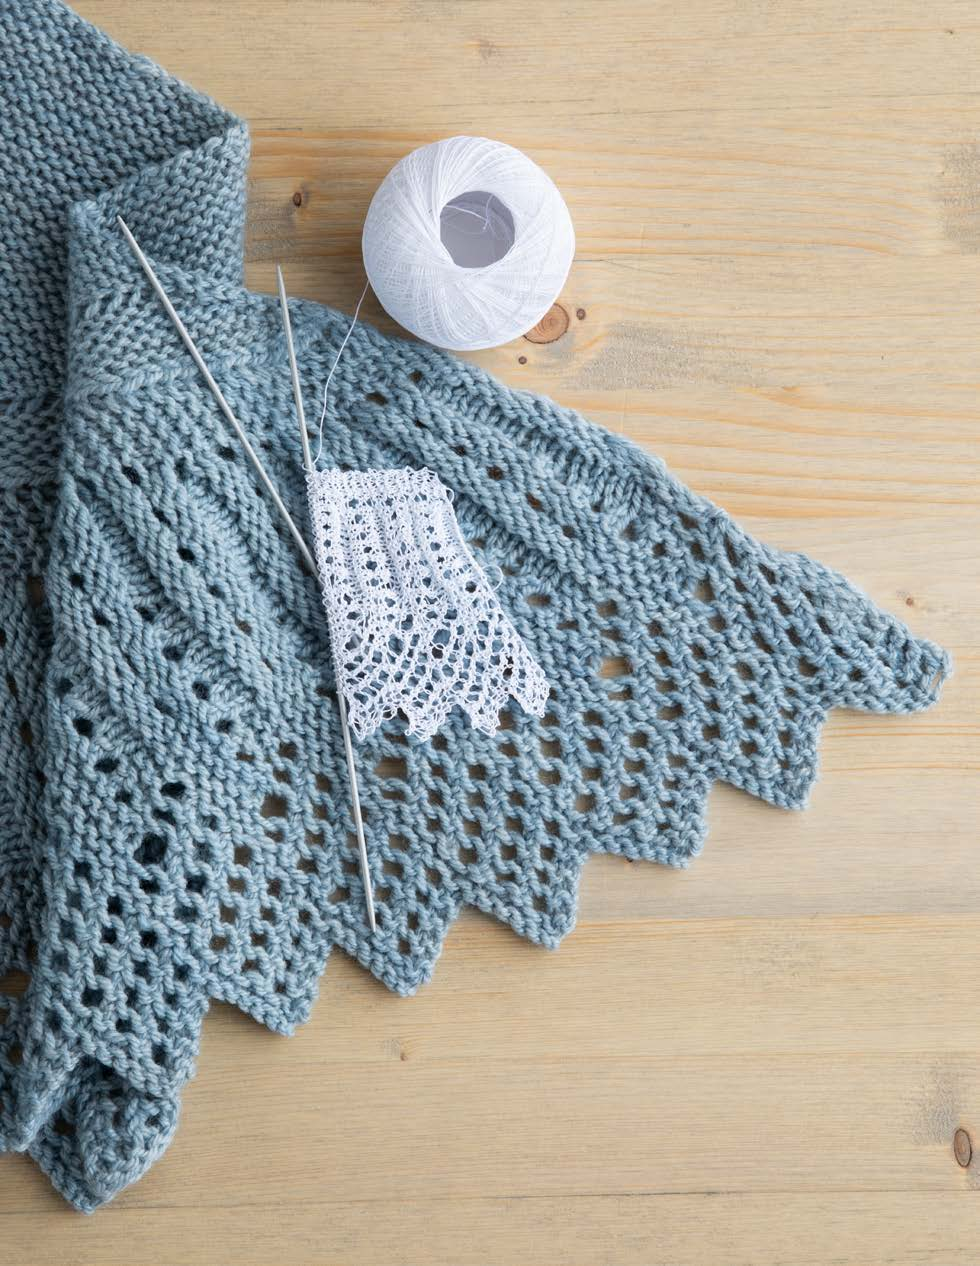 Fluted Lace Shawl Knitting Pattern